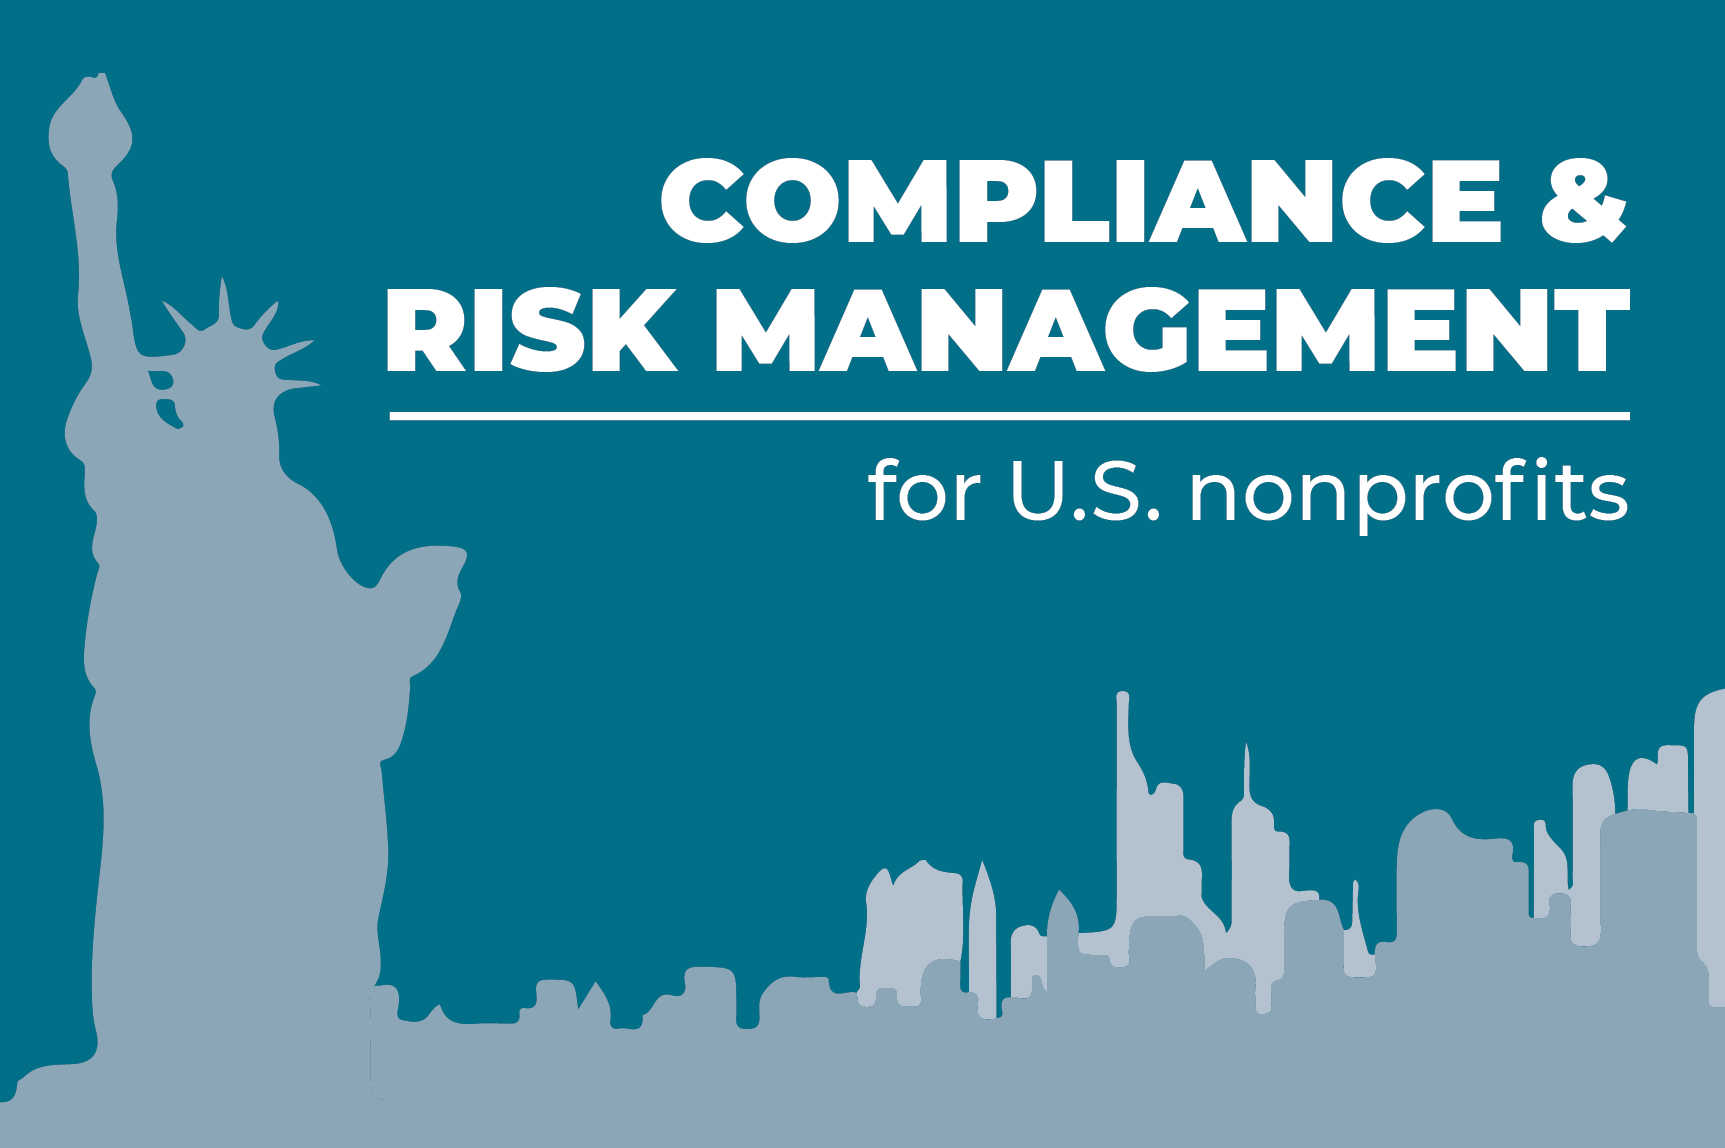 ICNL's list of resources and information on compliance and risk management for U.S. nonprofits.